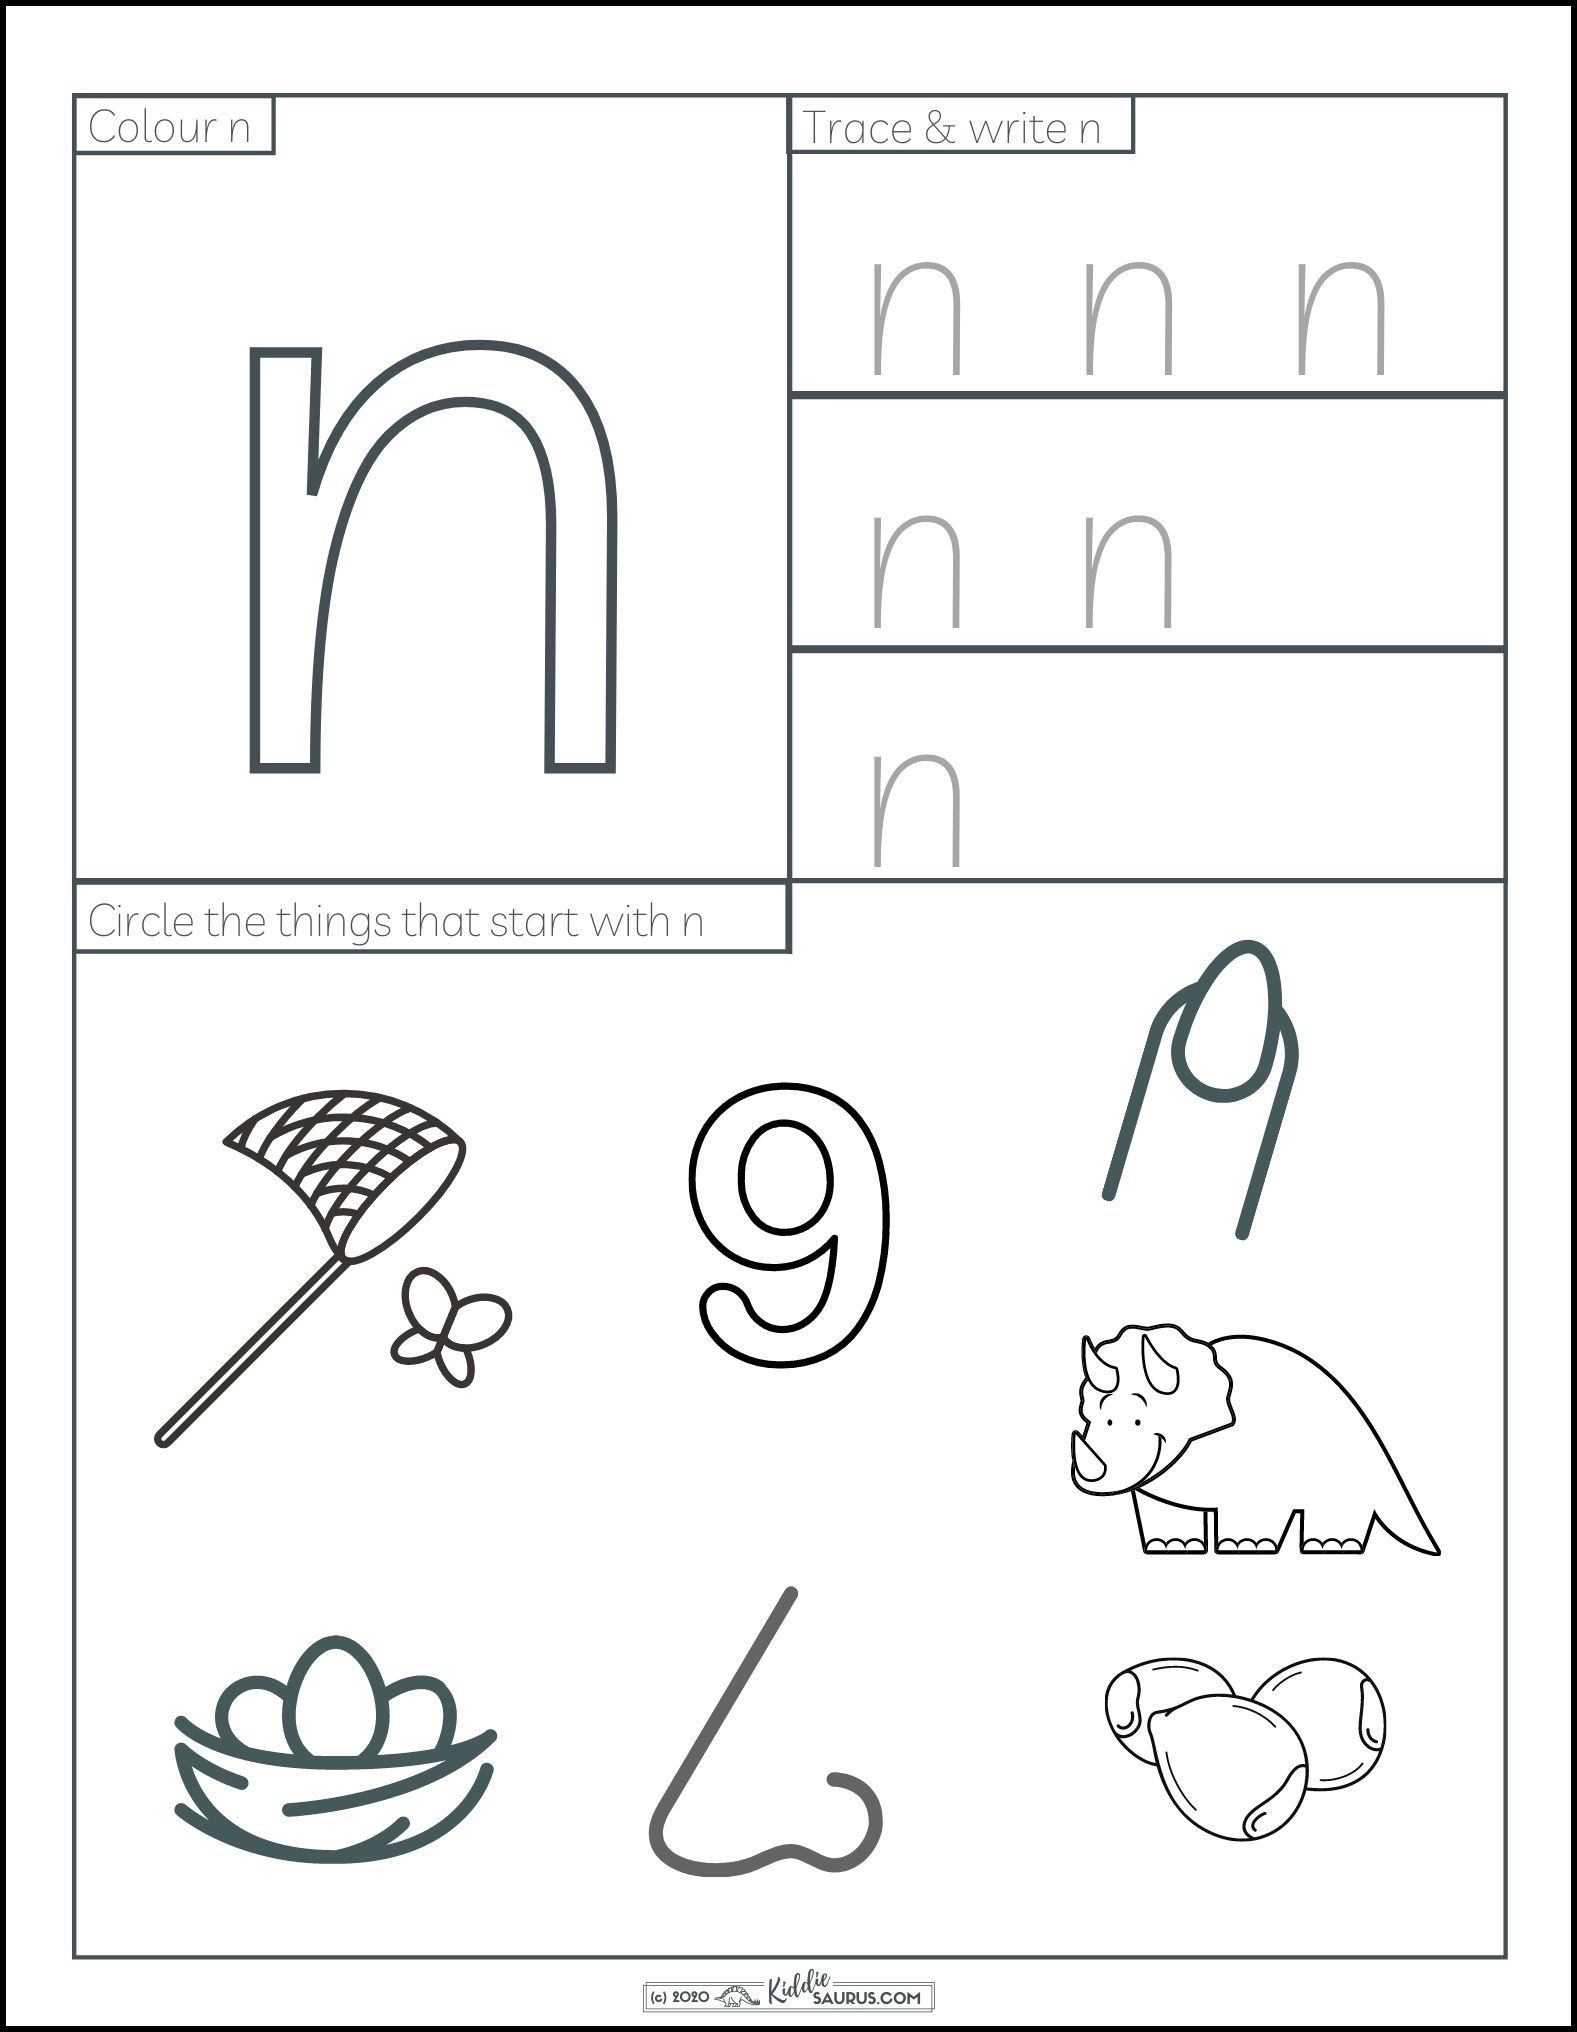 Pin On Best Of Learning Ideas For Kids